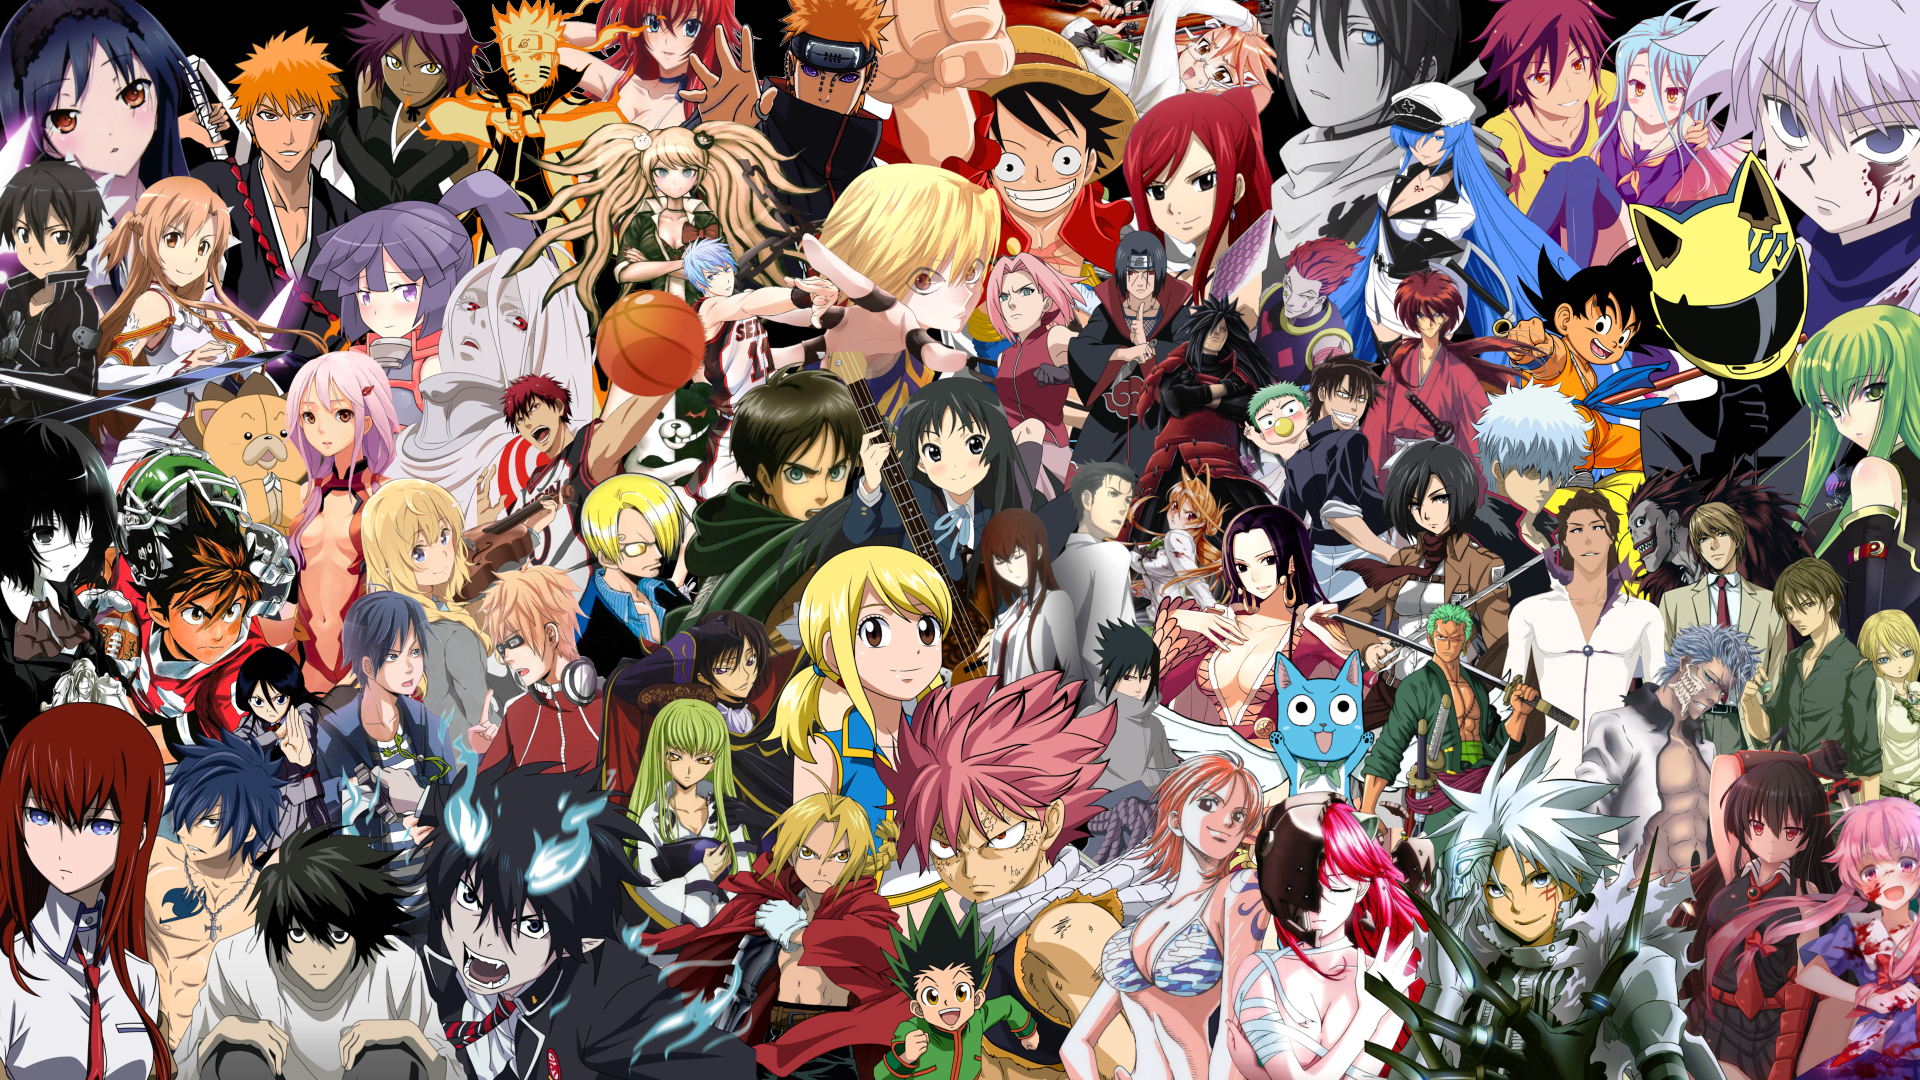 anime mix wallpaper (anime wallpaper 8k) 8k ultra hd wallpaper and